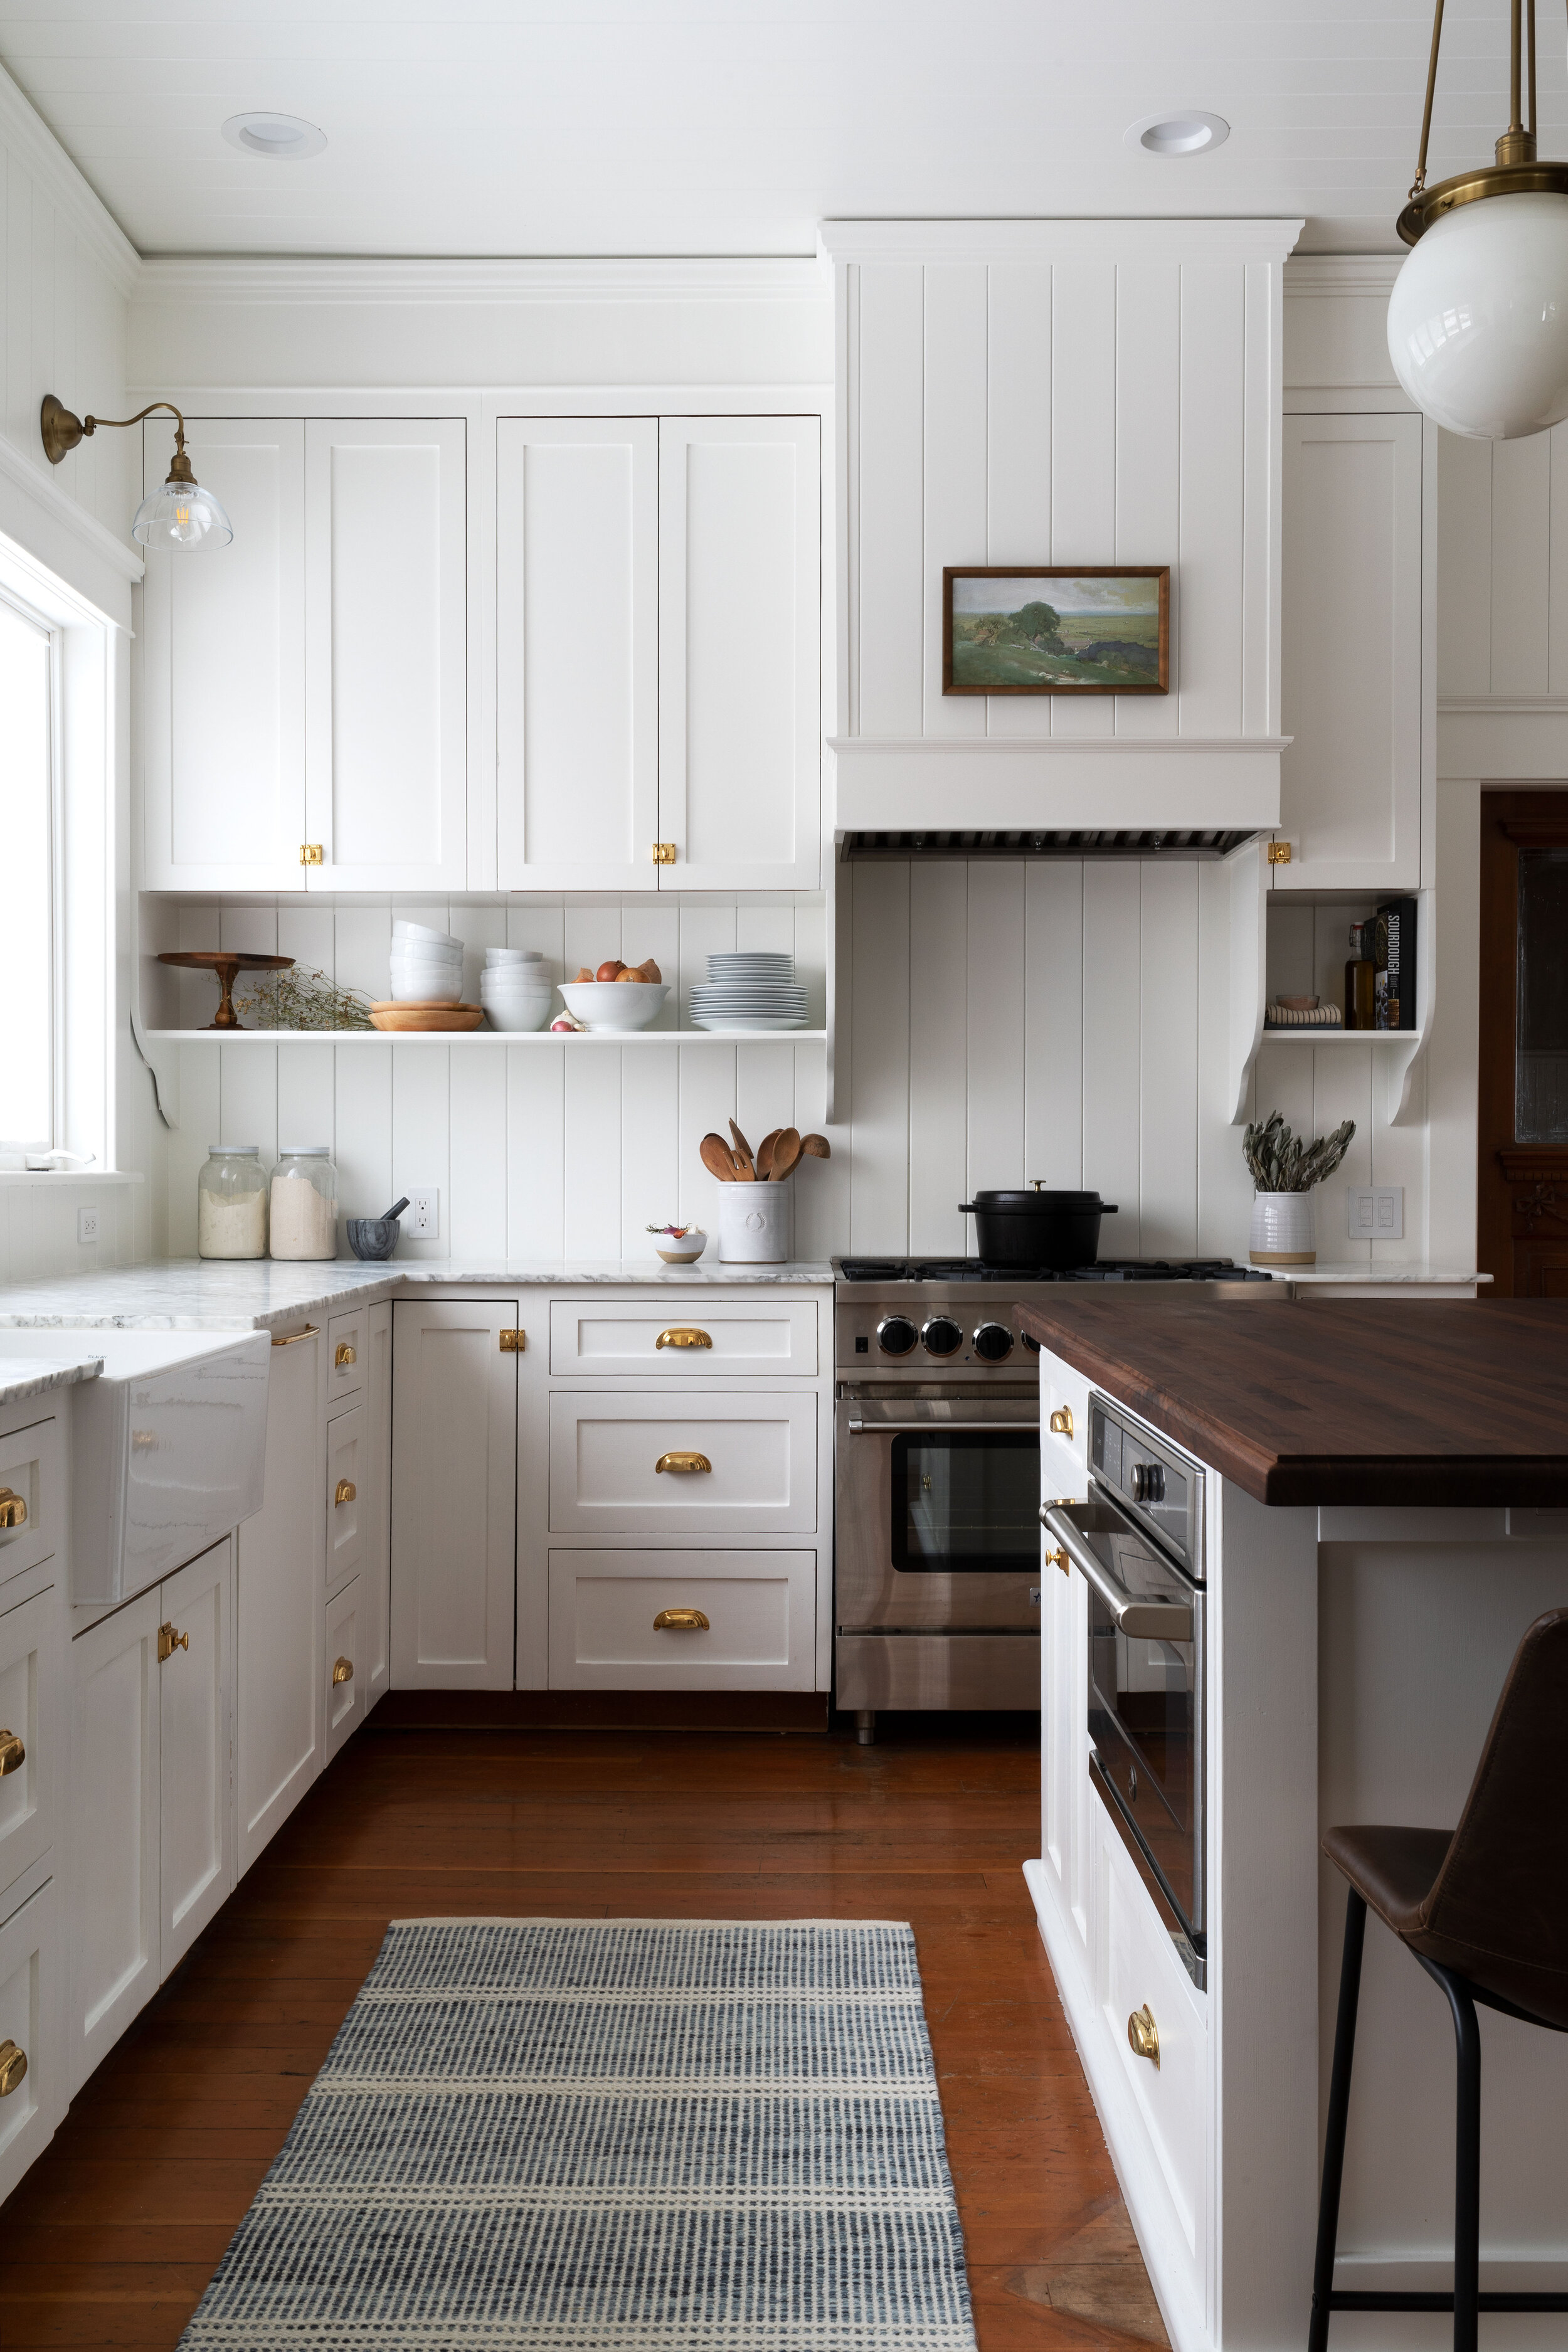 The Grit and Polish - Farmhouse Country Kitchen Reveal 3.0 9.2 web.jpg